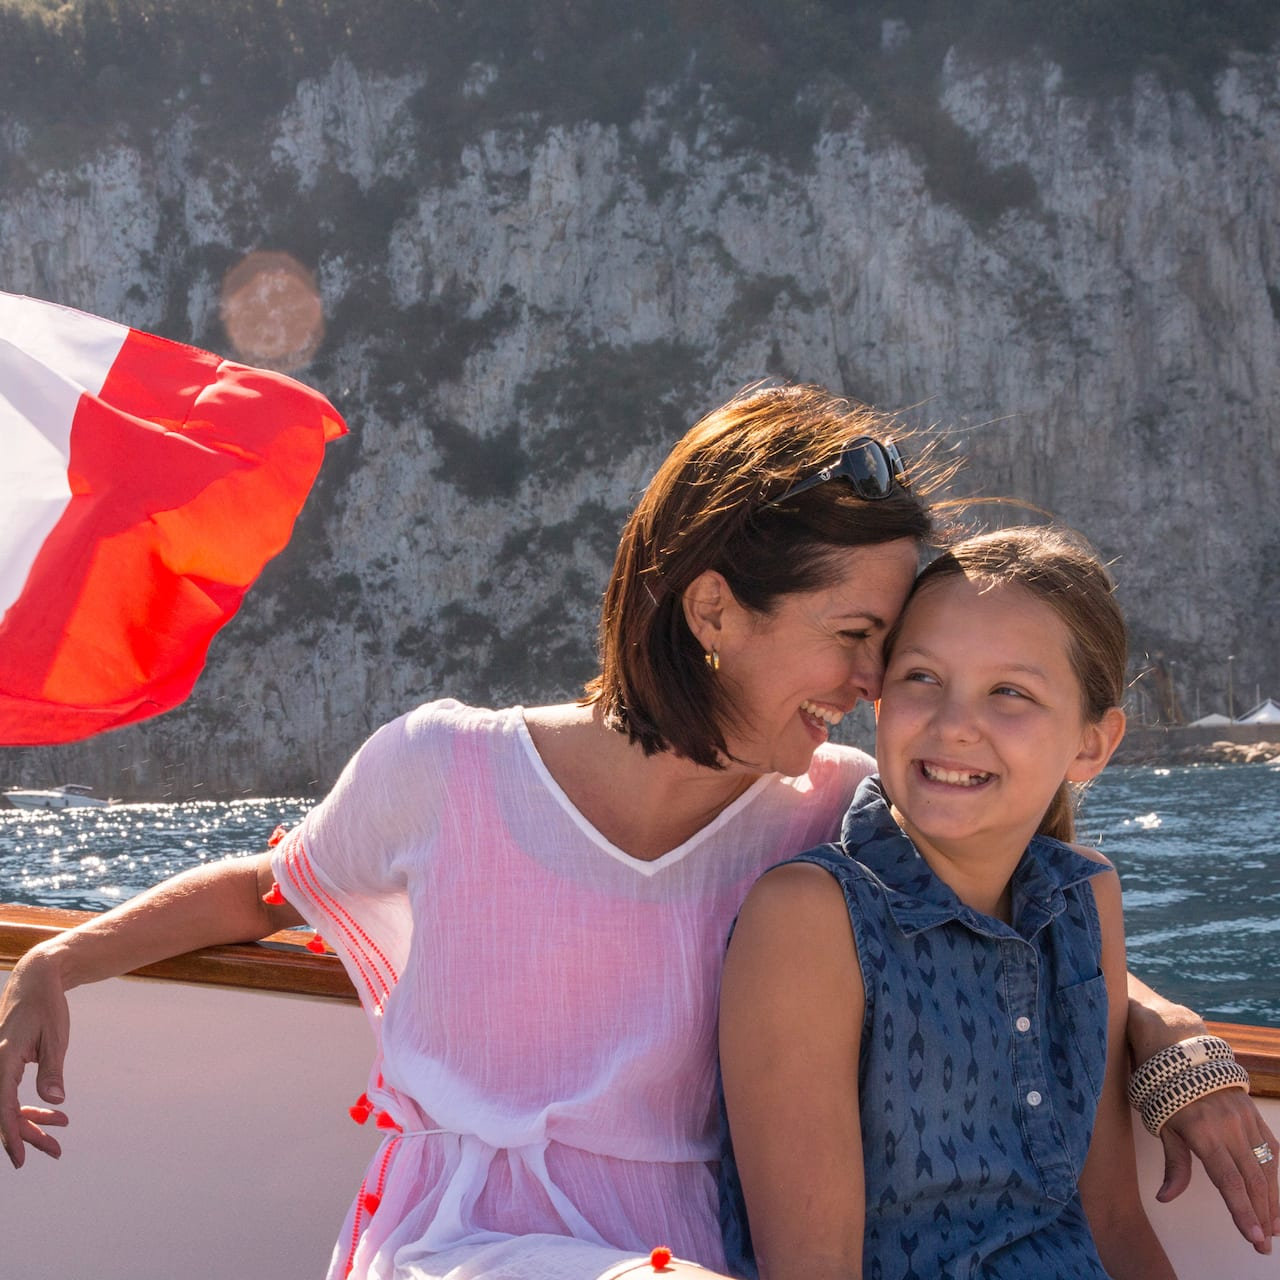 A woman presses her head against her young daughter's forehead as they ride a boat that flies the Italian flag